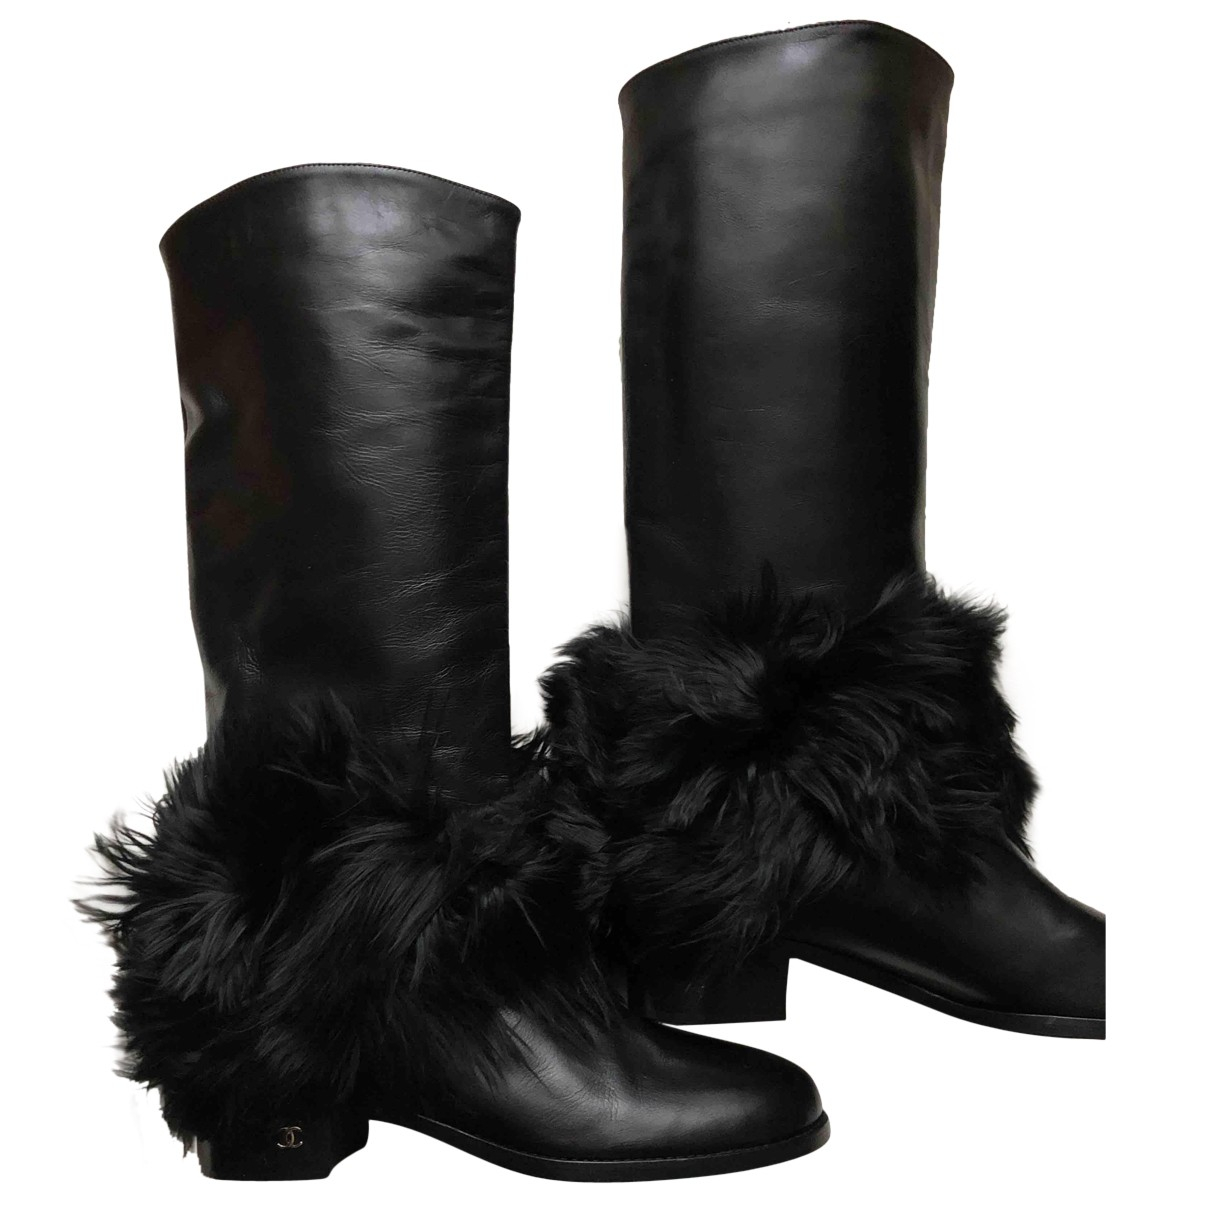 Chanel N Black Leather Boots for Women 40 EU